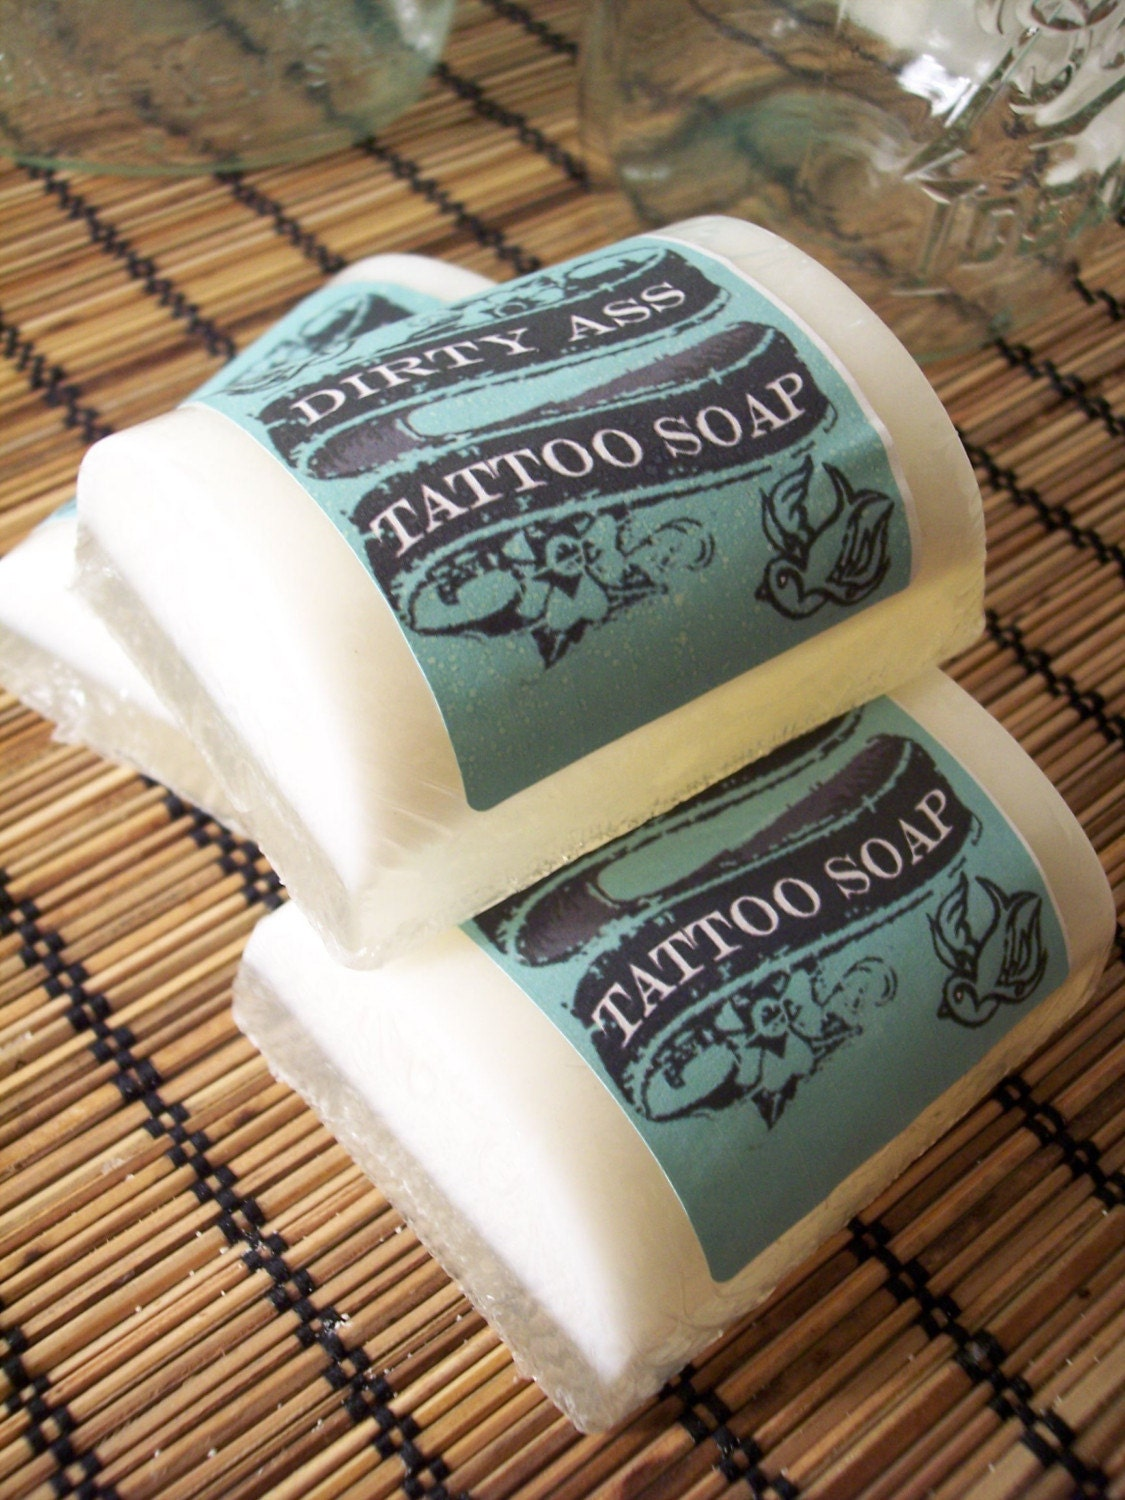 Dirty Ass Tattoo Soap - vegan soap